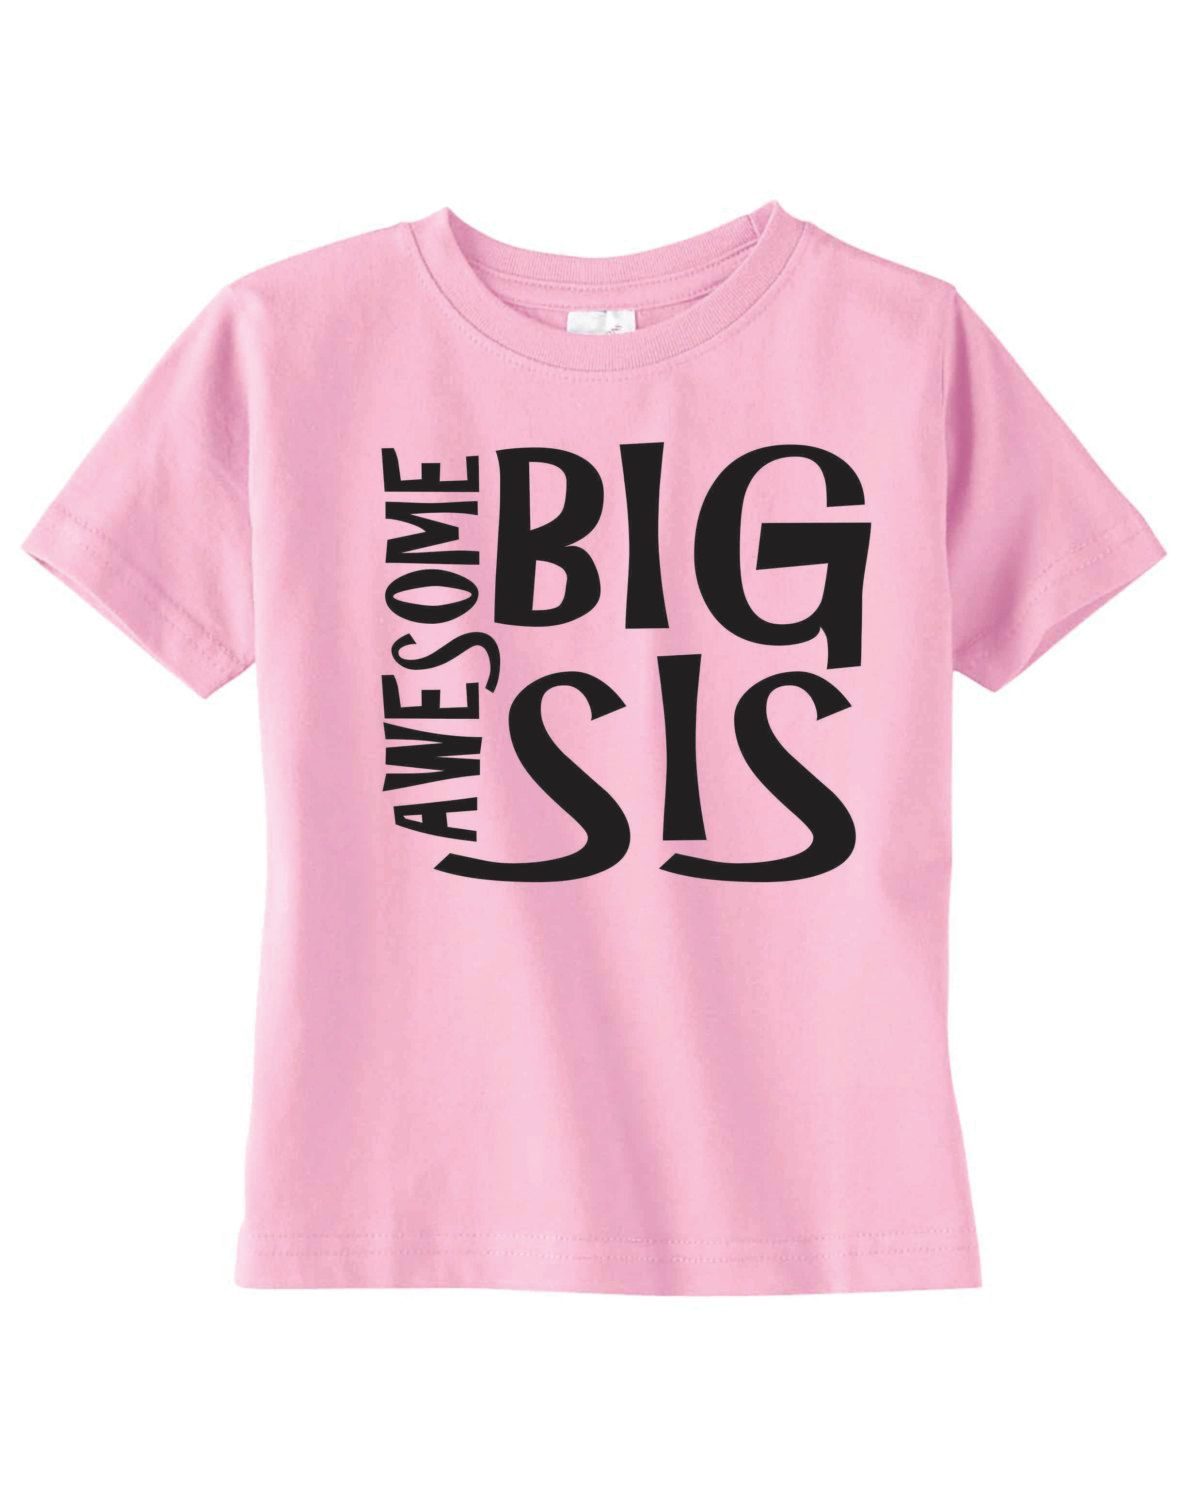 e8cf501b99 Awesome Big Sister shirt Available for Big